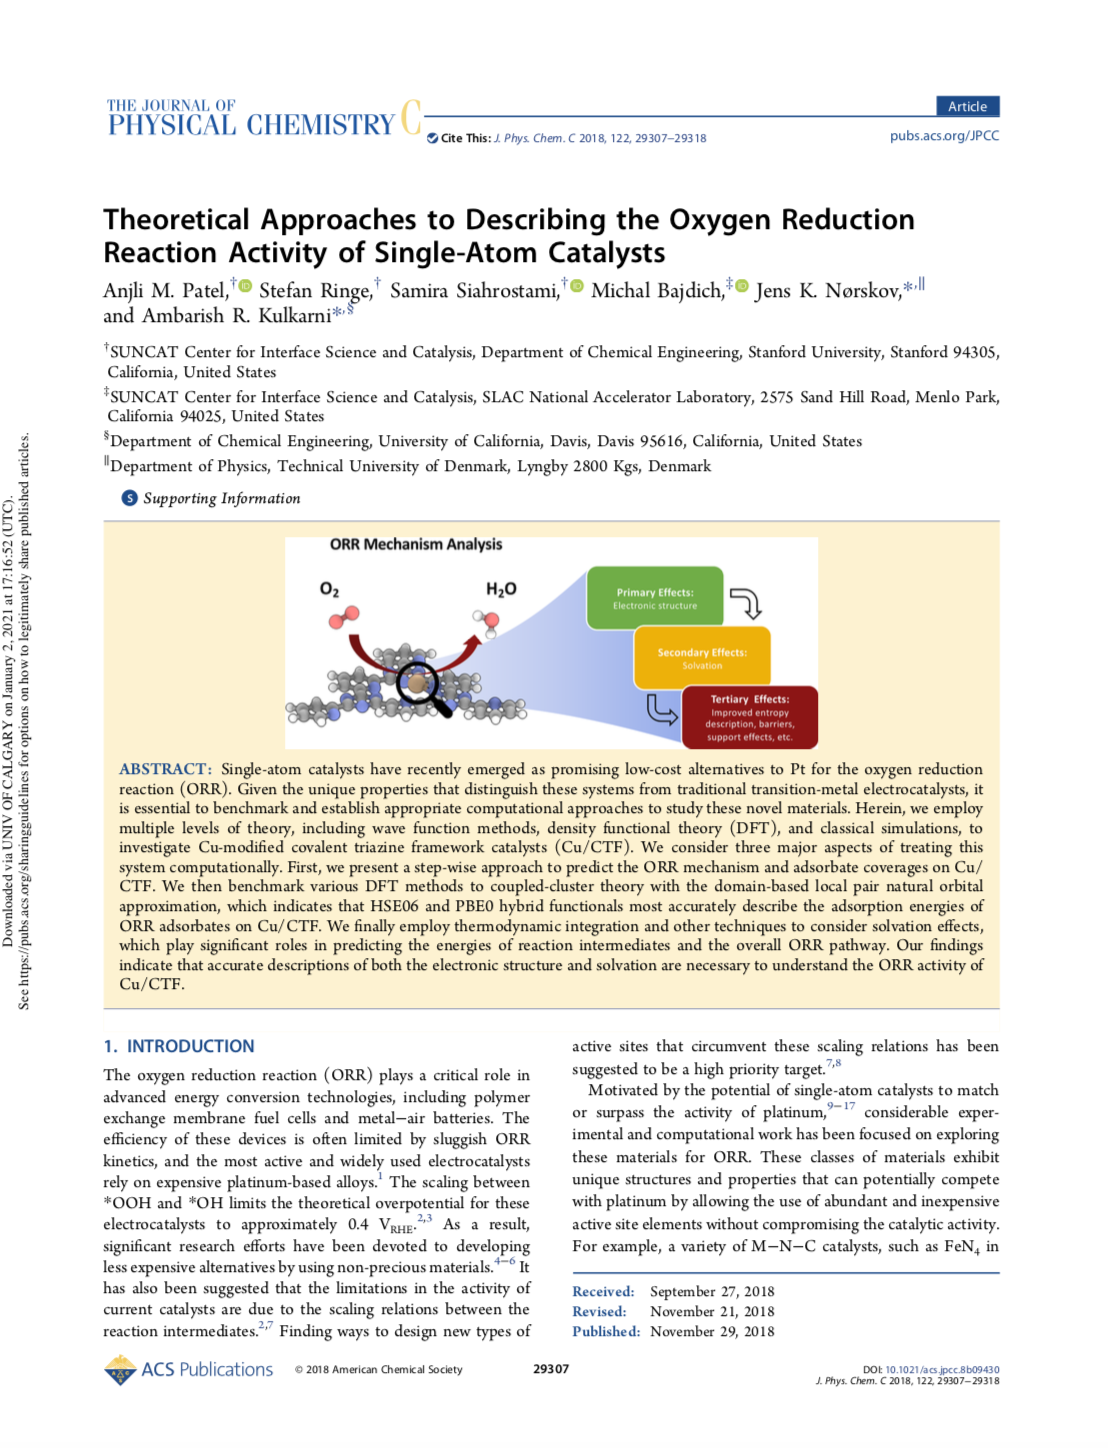 Theoretical Approaches to Describing the Oxygen Reduction Reaction Activity of Single-Atom Catalysts